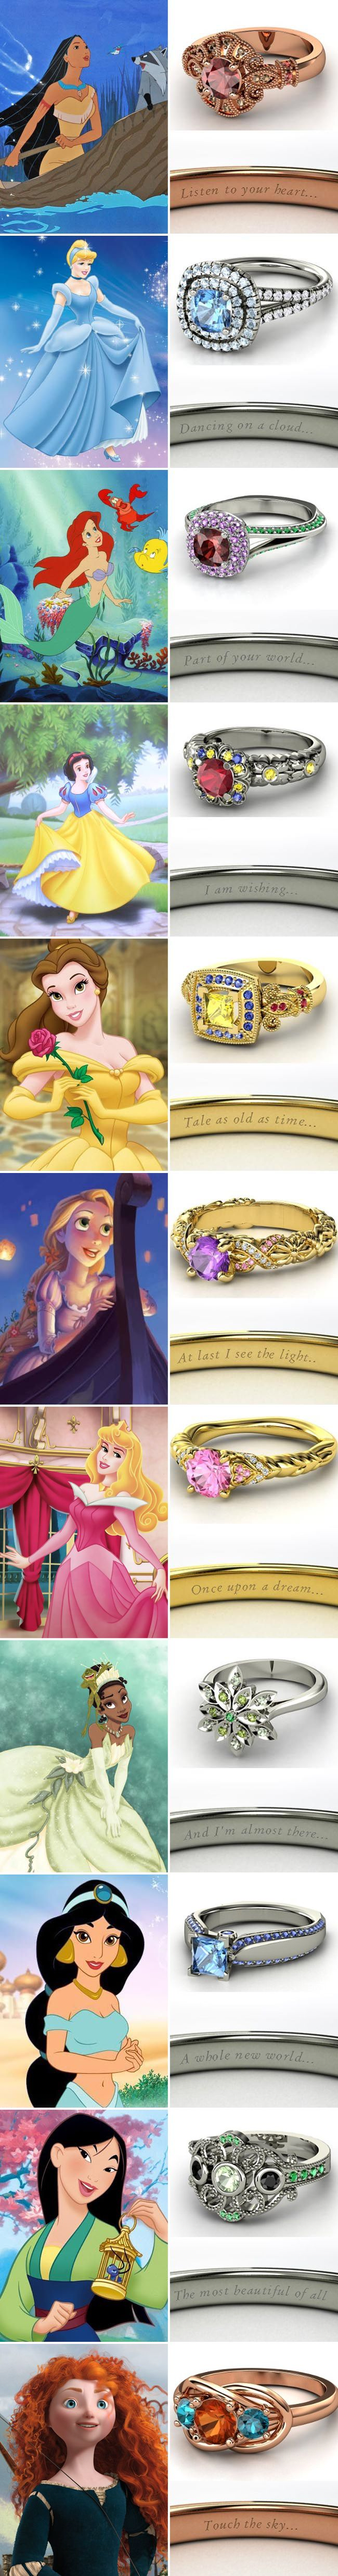 Disney princess wedding rings and more ideas for diehard #DisneyPrincess fans!